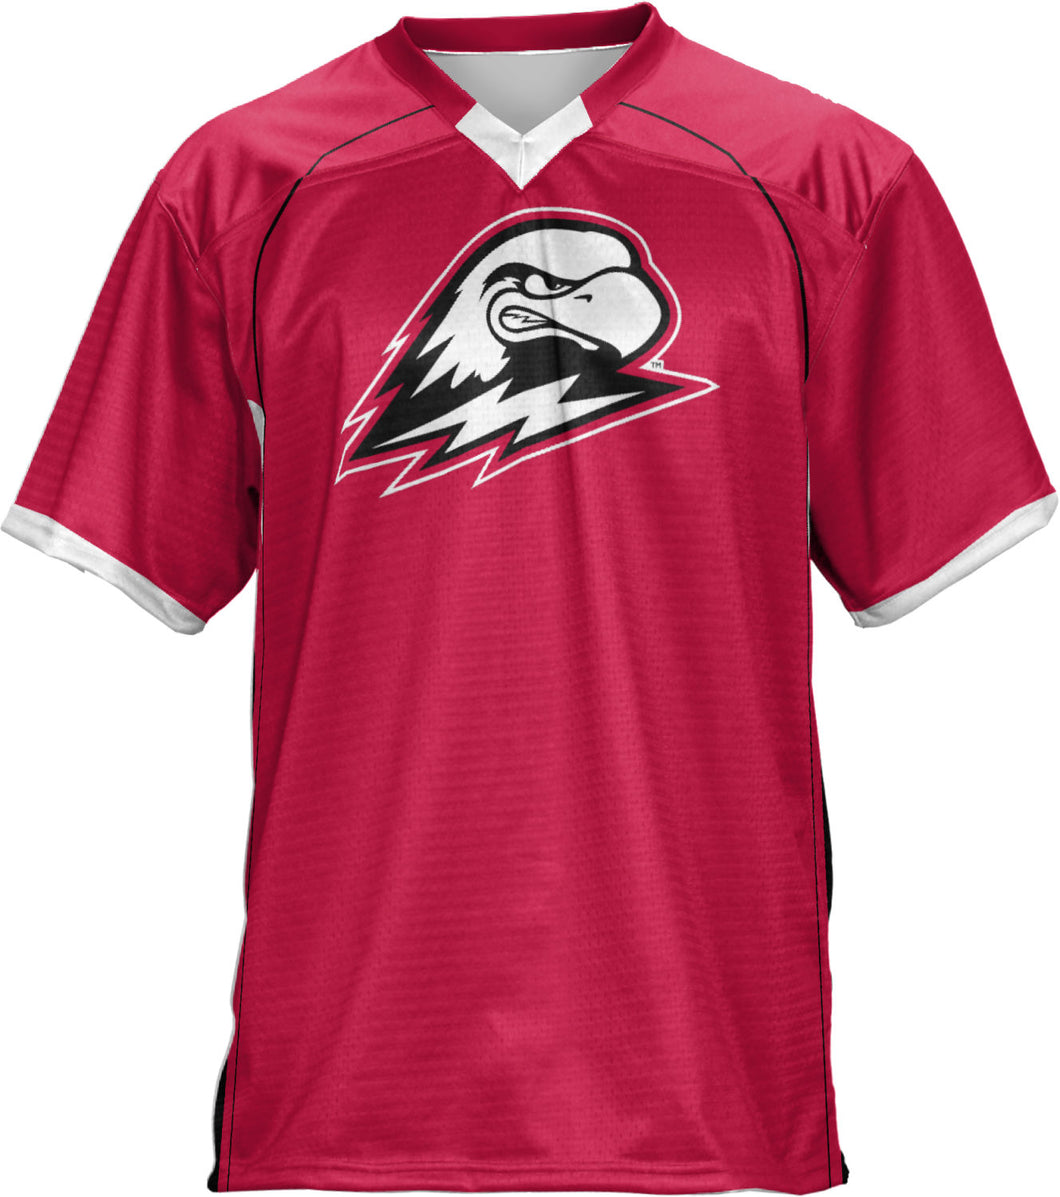 Southern Utah University: Boys' Football Fan Jersey - No Huddle